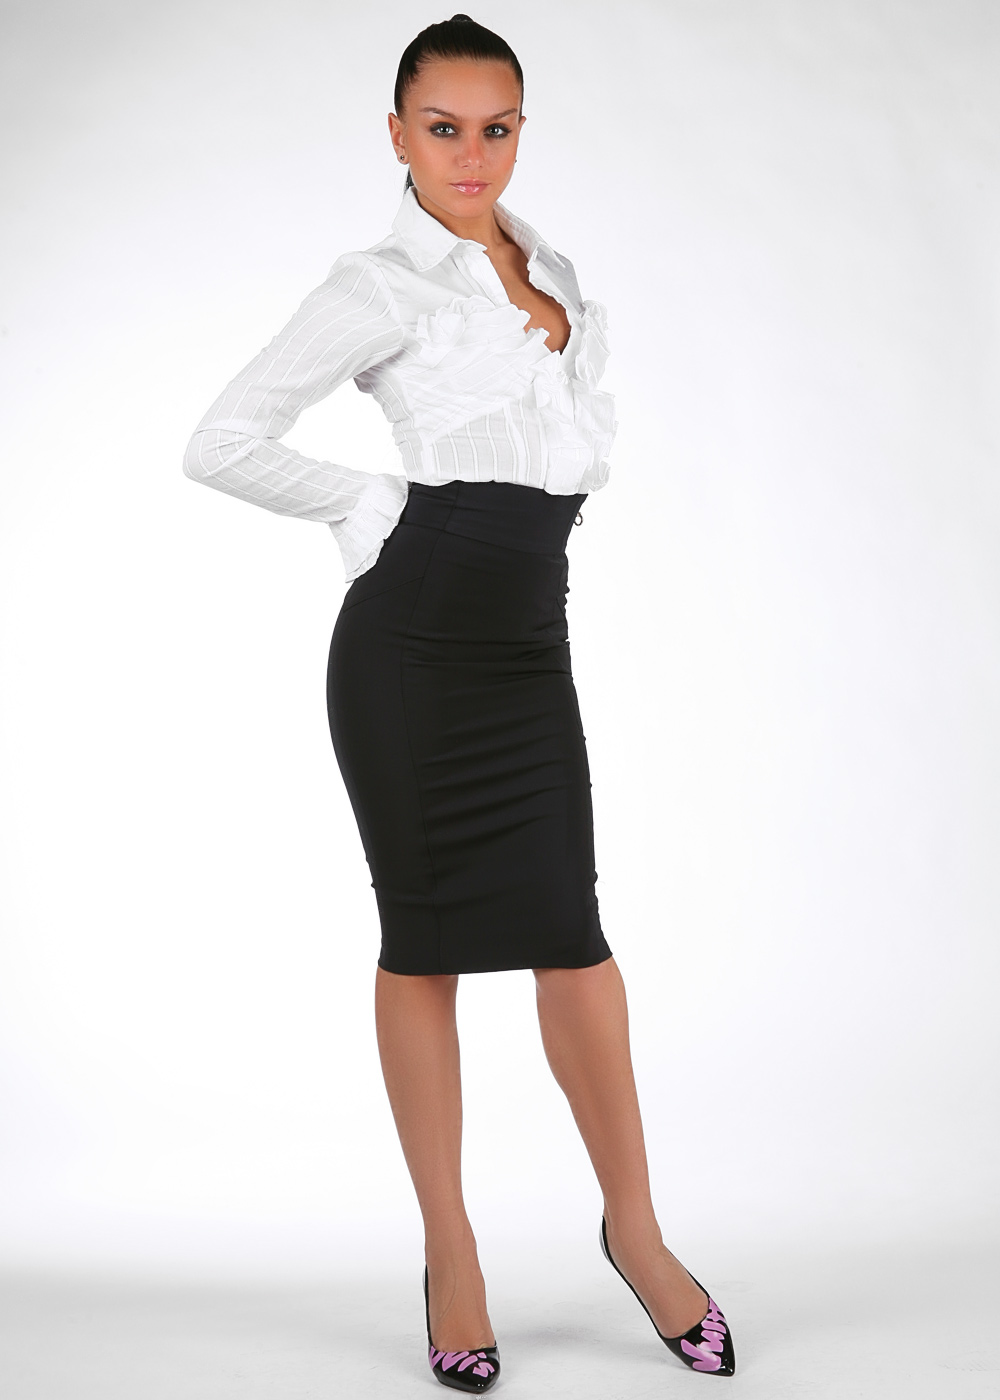 Business woman look-skirt suit and tights | fashion tights ...